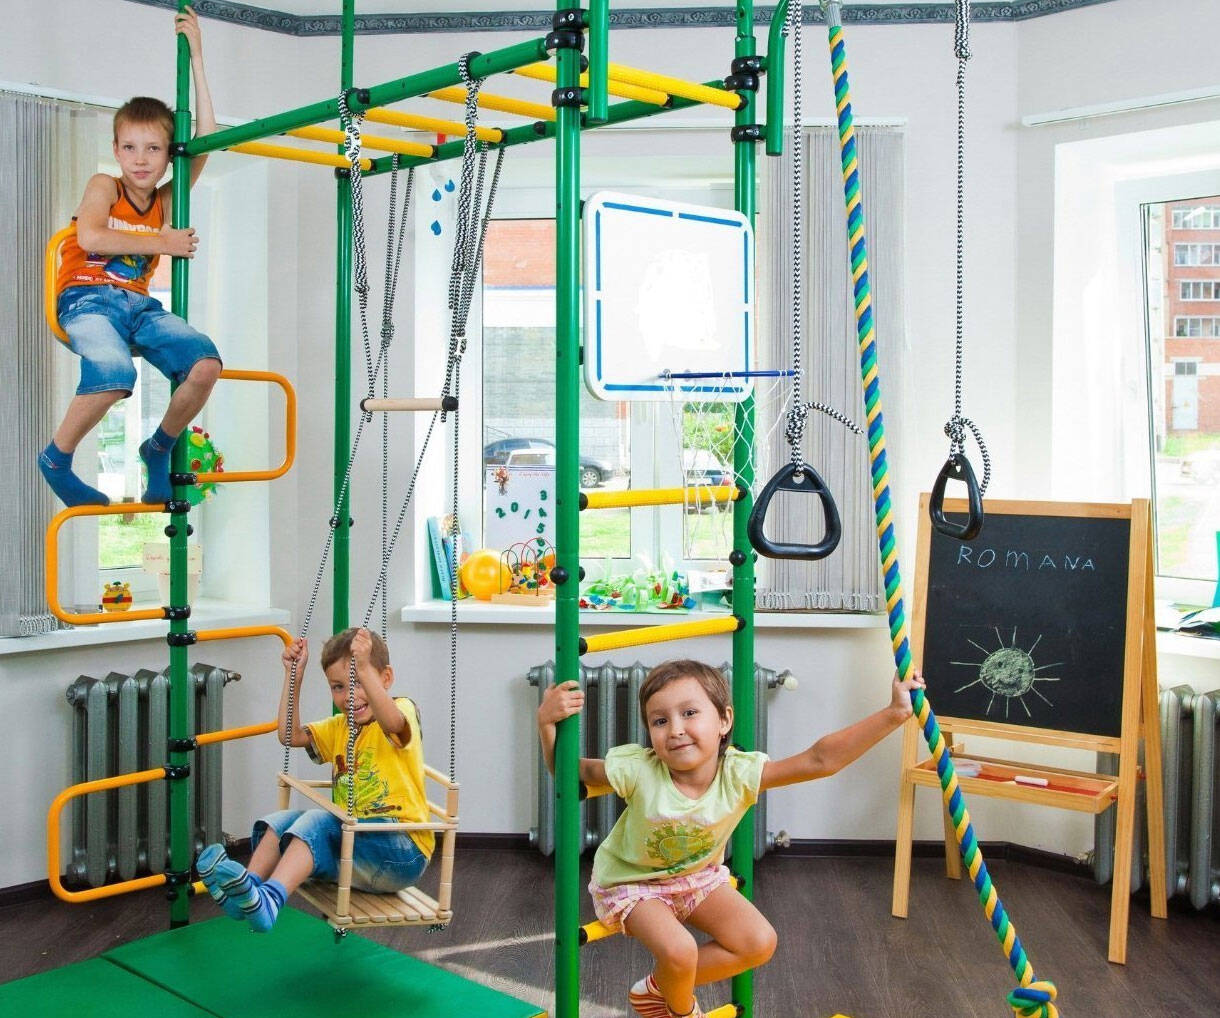 Children's Indoor Playground - coolthings.us